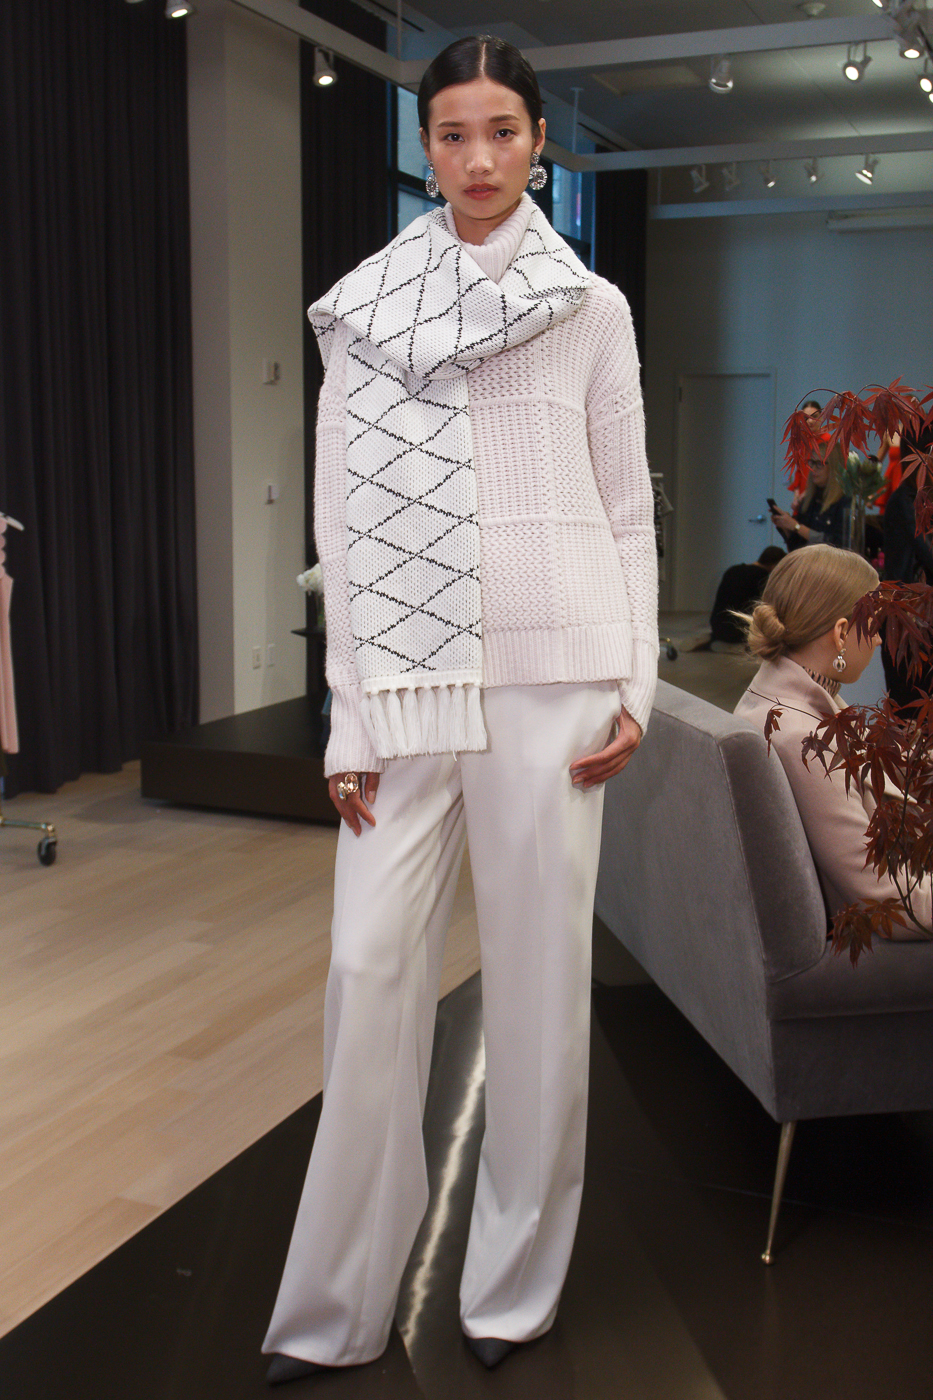 0c15b5c71c White pant & scarf with off-white sweater Photo: ©Shawn Punch 2016